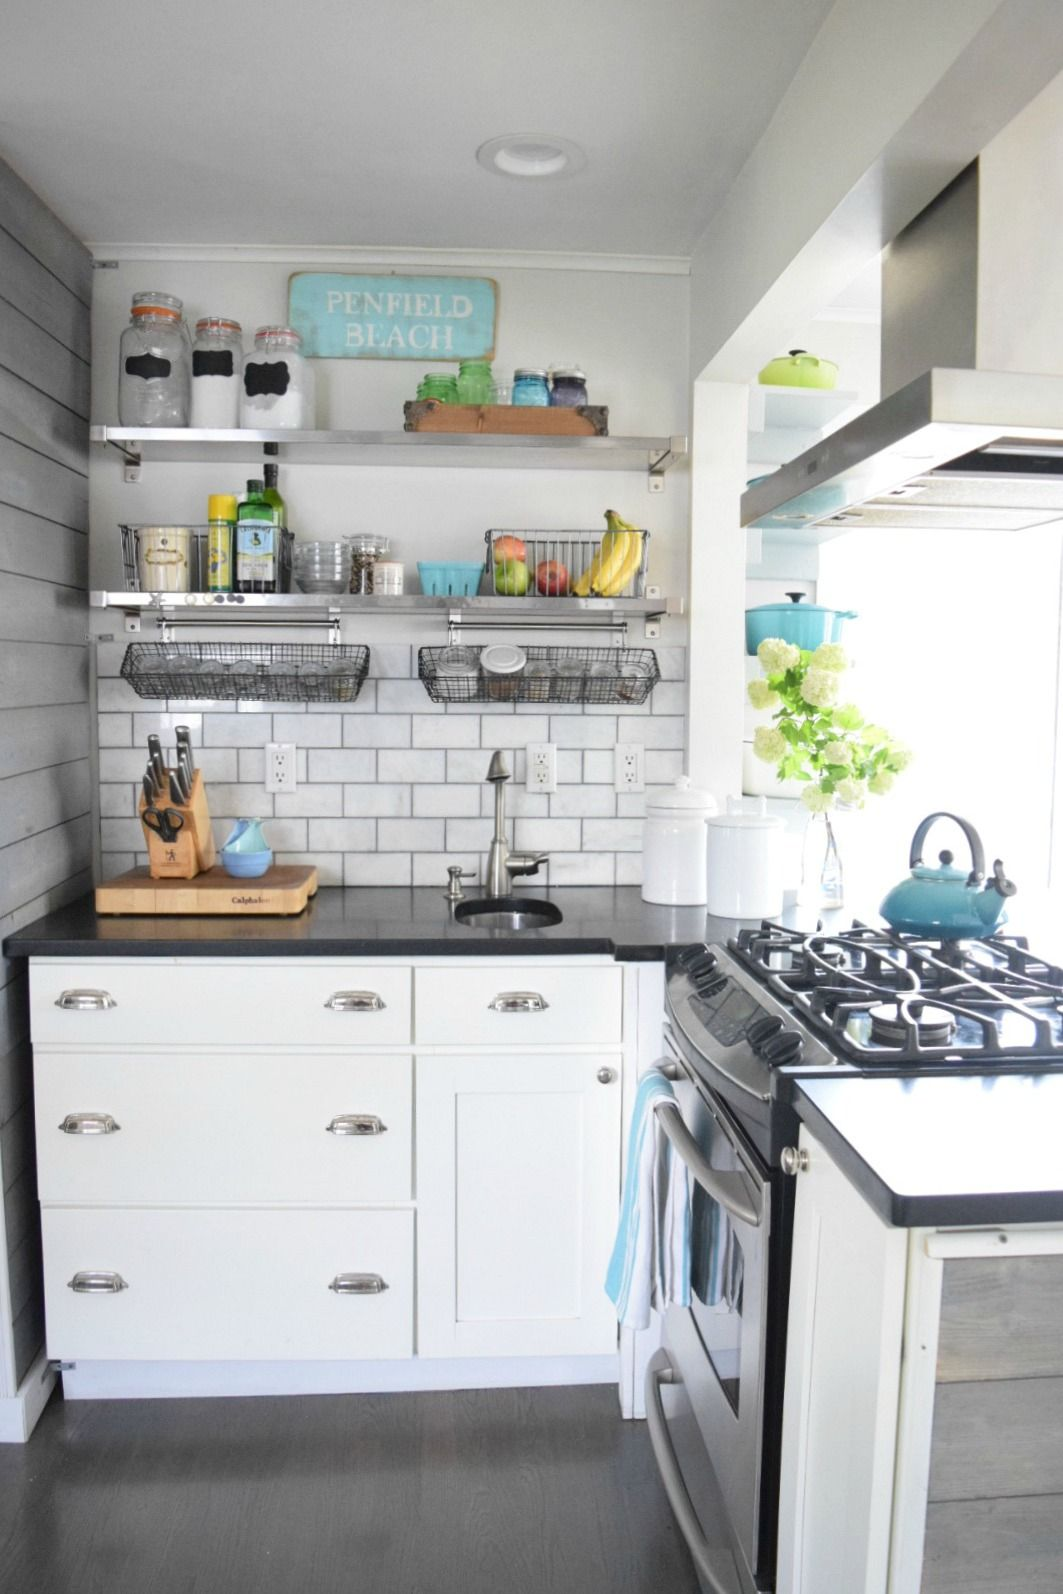 Take Home Designer Series New England Kitchen Tour Of A Dietitian Magnificent What Is New In Kitchen Design Inspiration